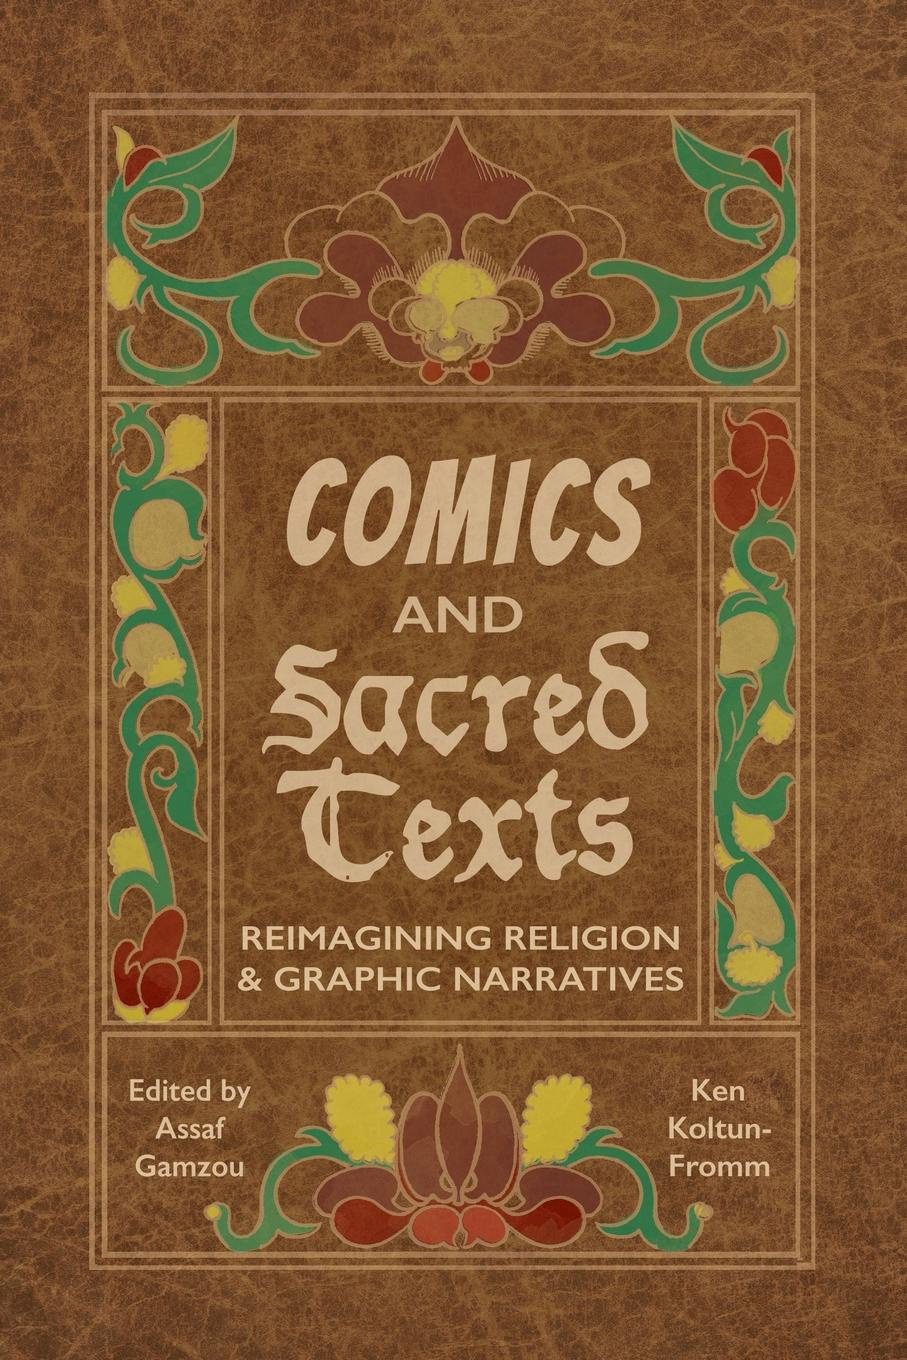 Comics and Sacred Texts. Reimagining Religion and Graphic Narratives коллектив авторов wyeth s repository of sacred music